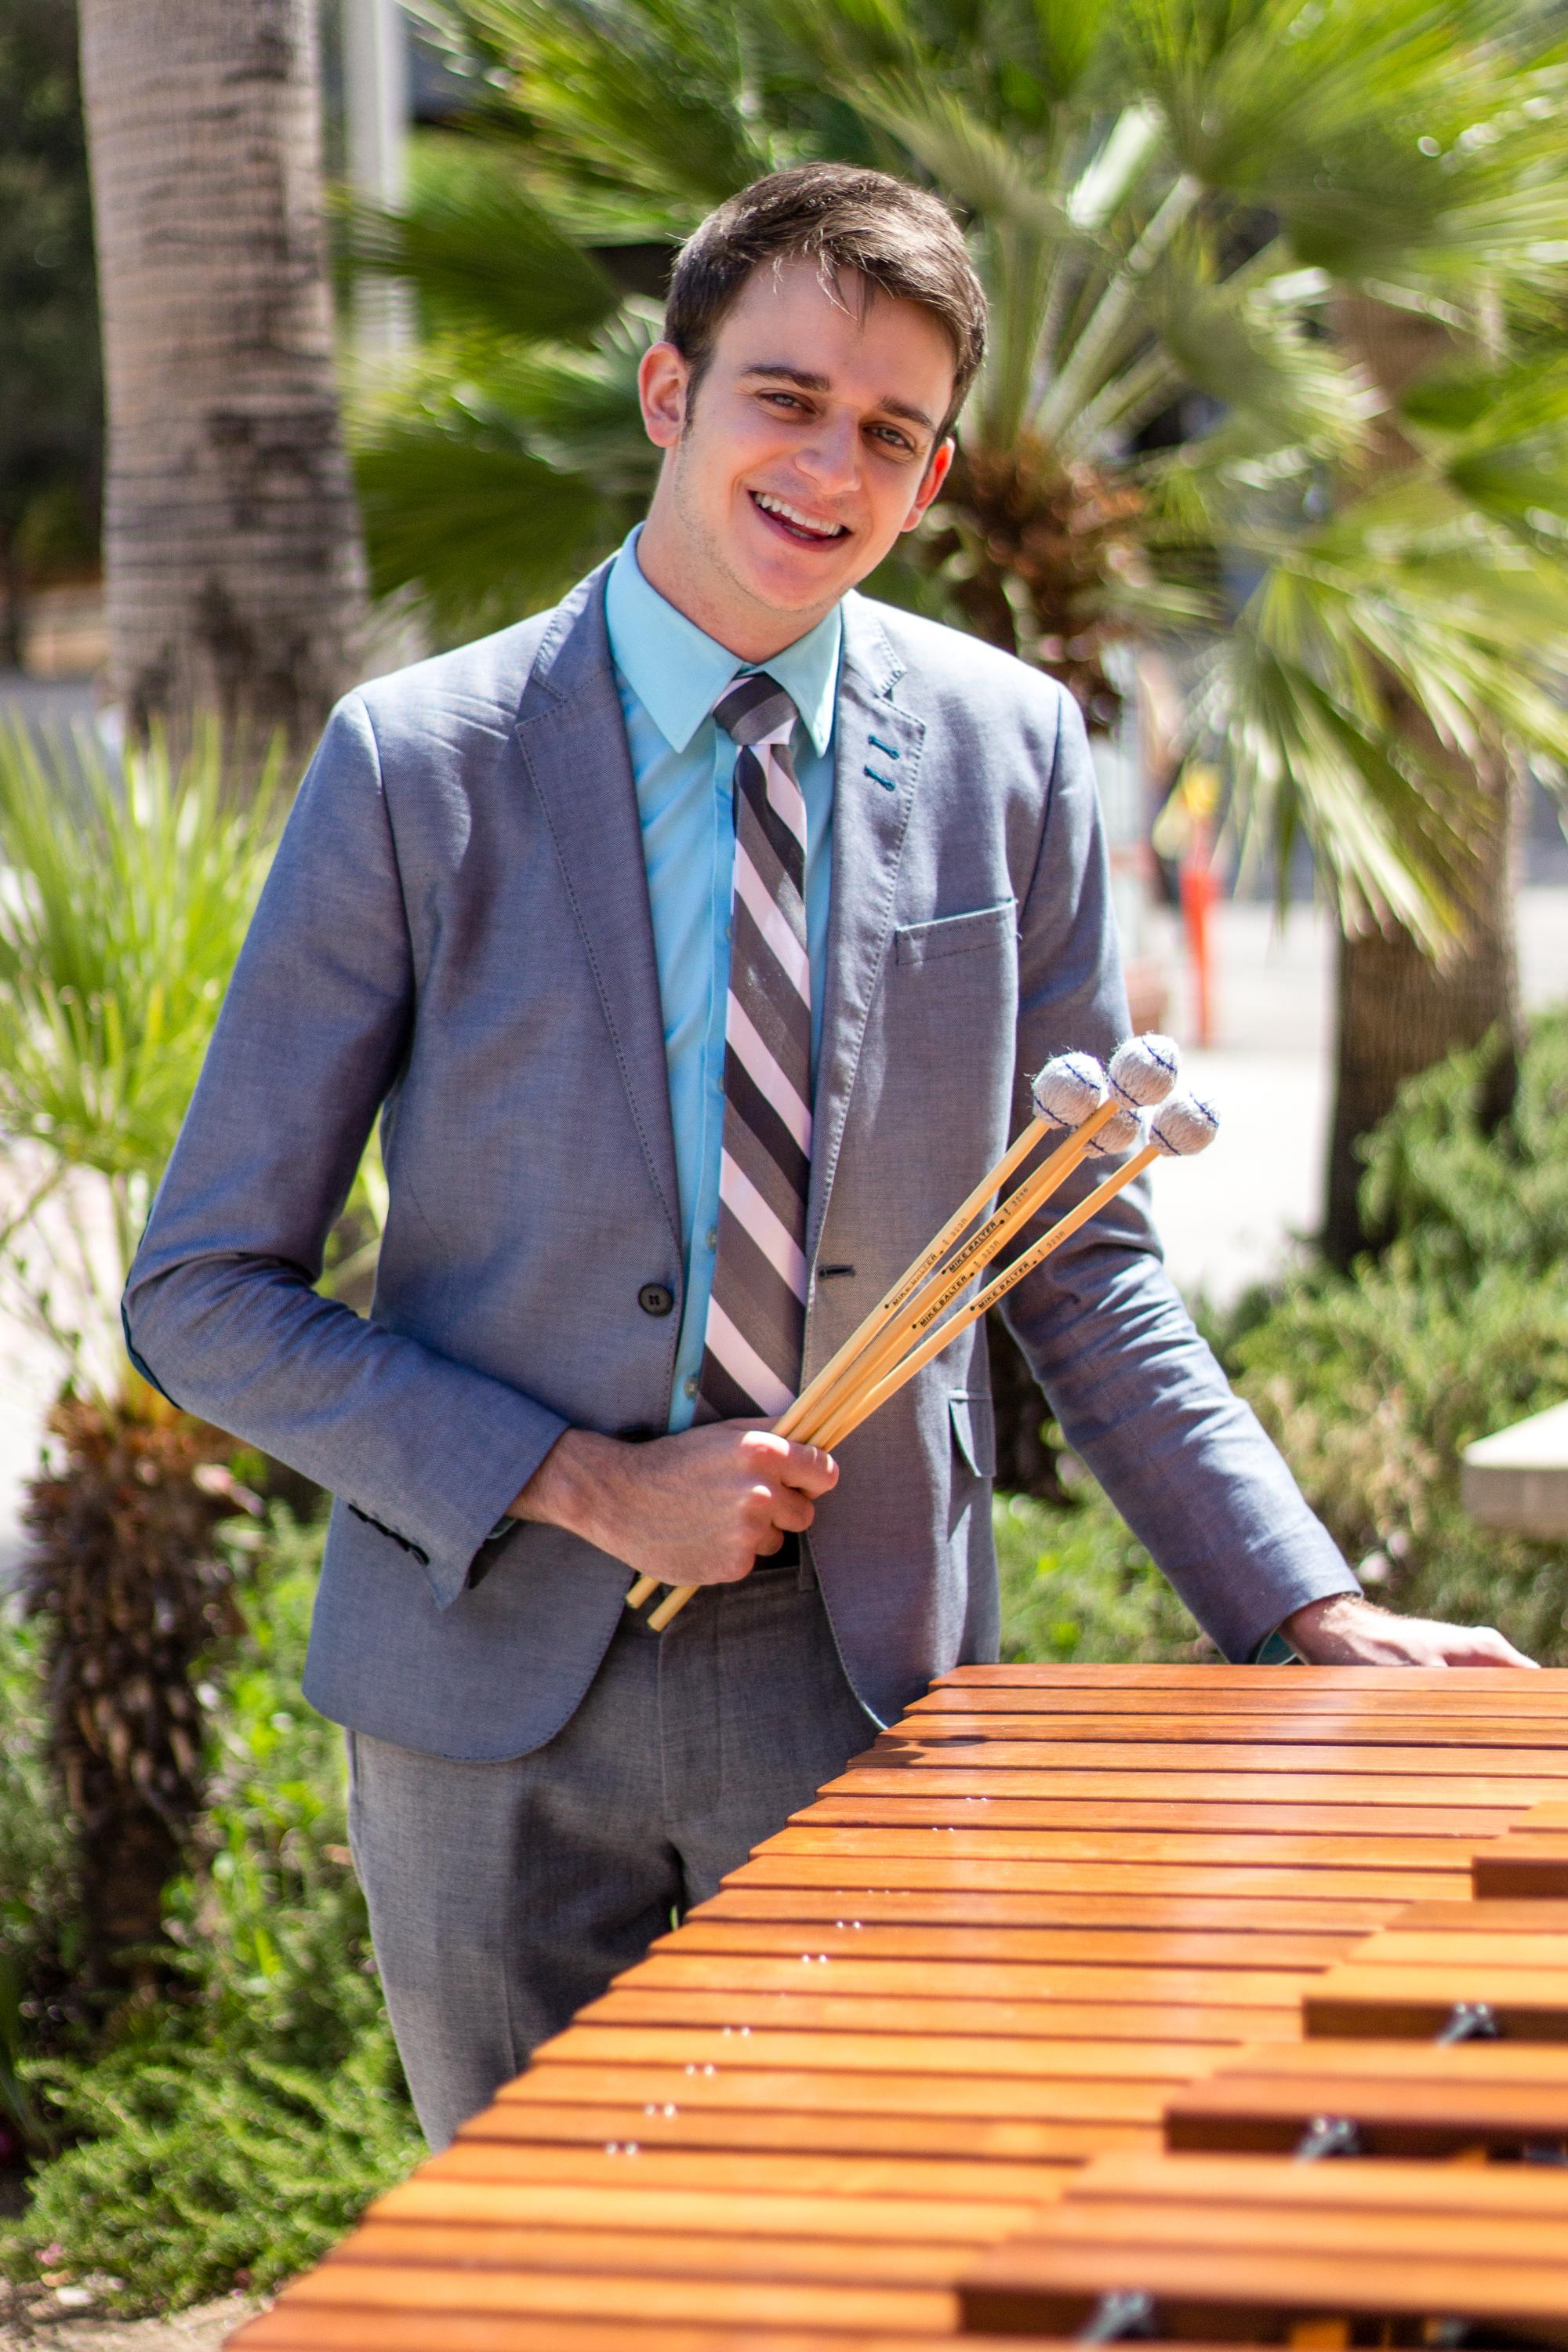 For a second consecutive year, Trevor Cameron Barroero is the gold medalist in the college division of the Tucson Symphony Orchestra's Concerto Competition and, this month, will appear as a featured soloist.